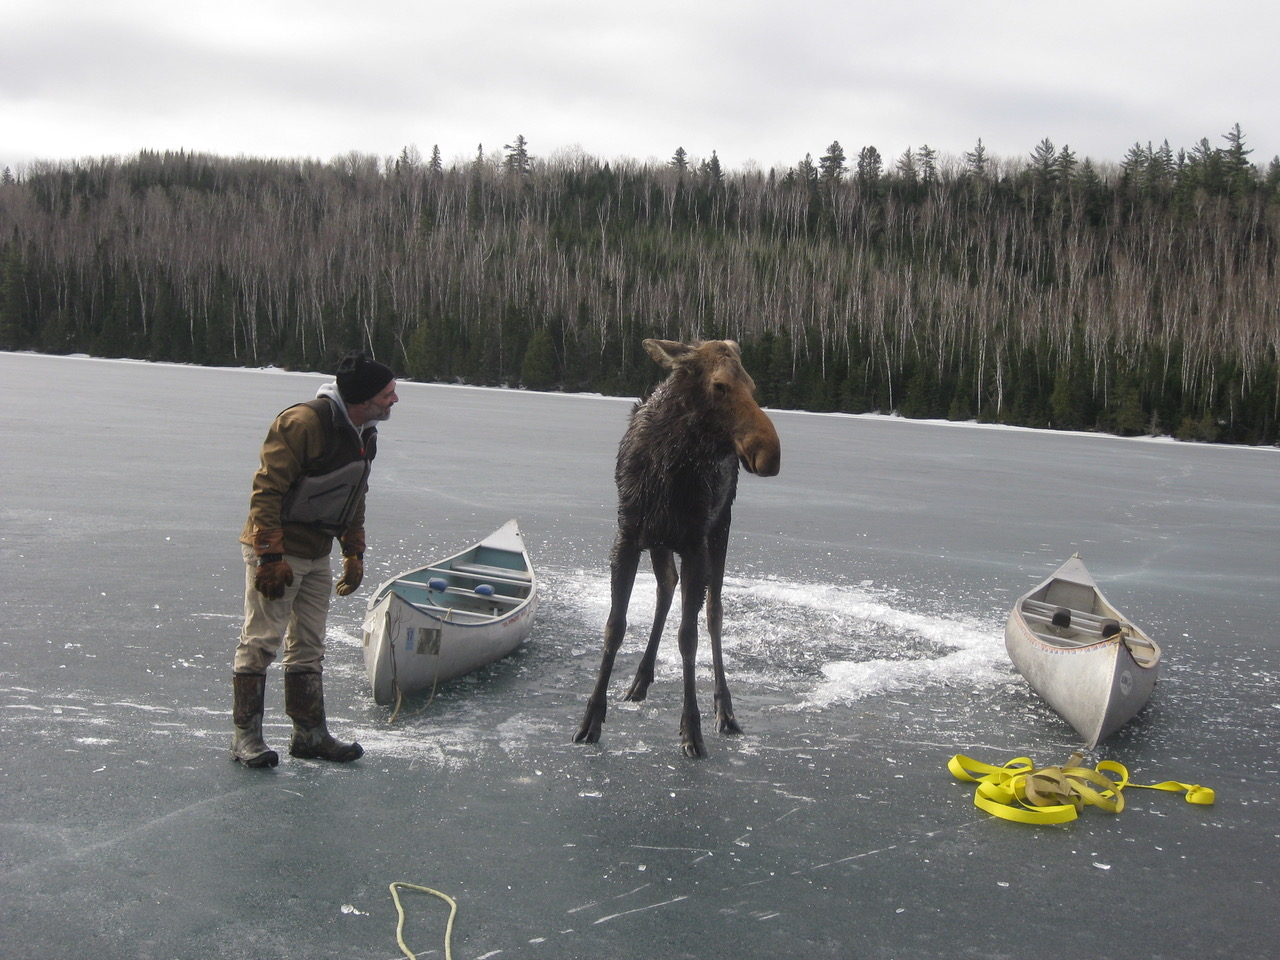 Biden gives hope to defenders of the Boundary Waters as Chilean mining giant seeks copper, nickel